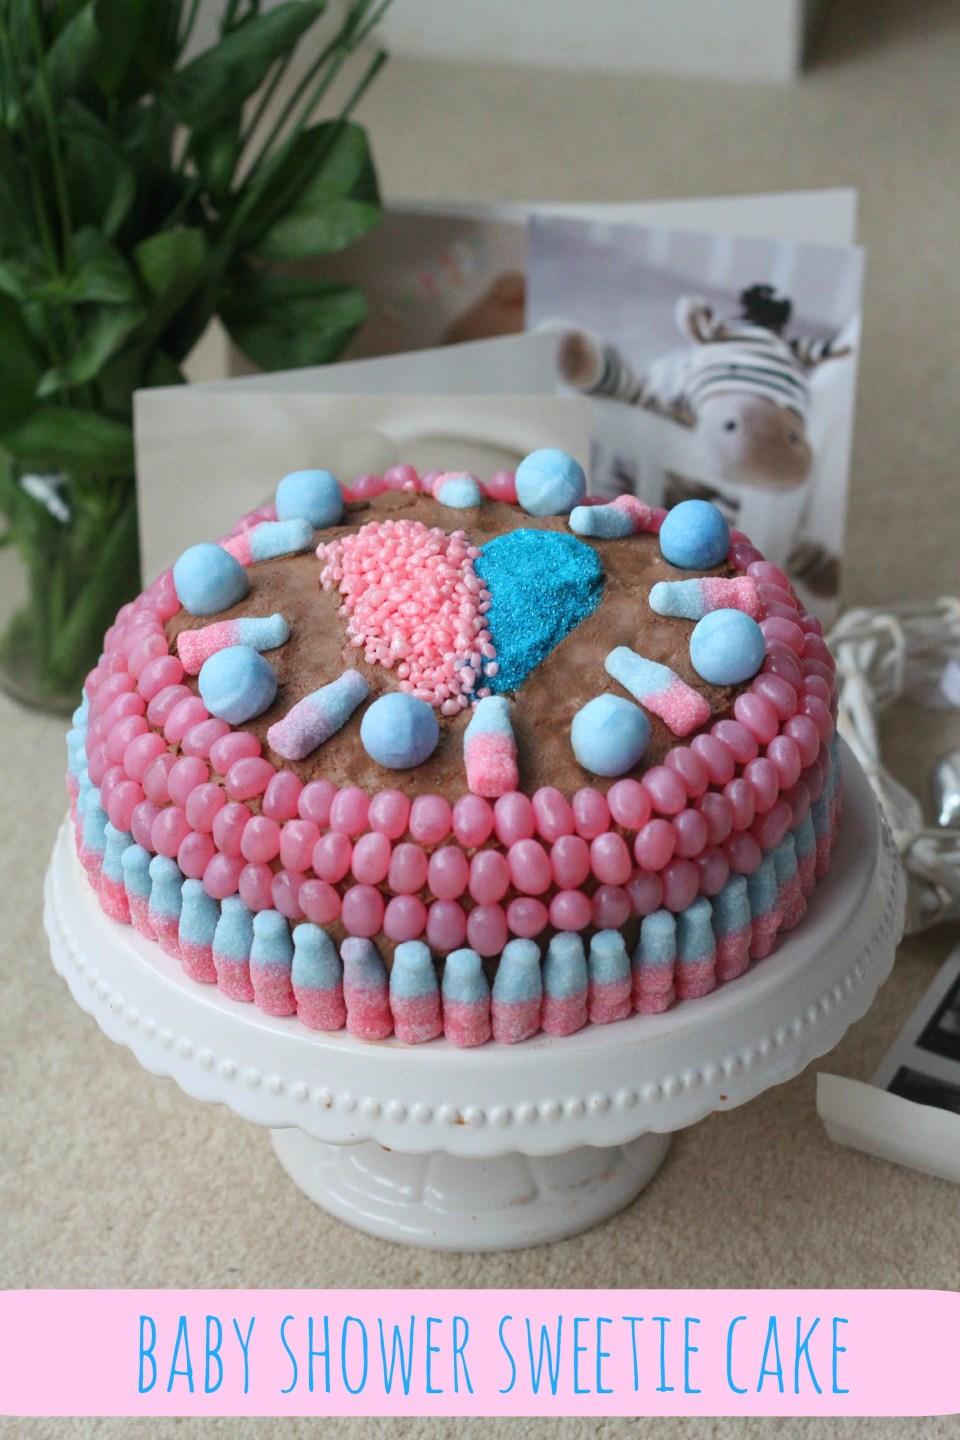 Baby Shower Sweetie Cake